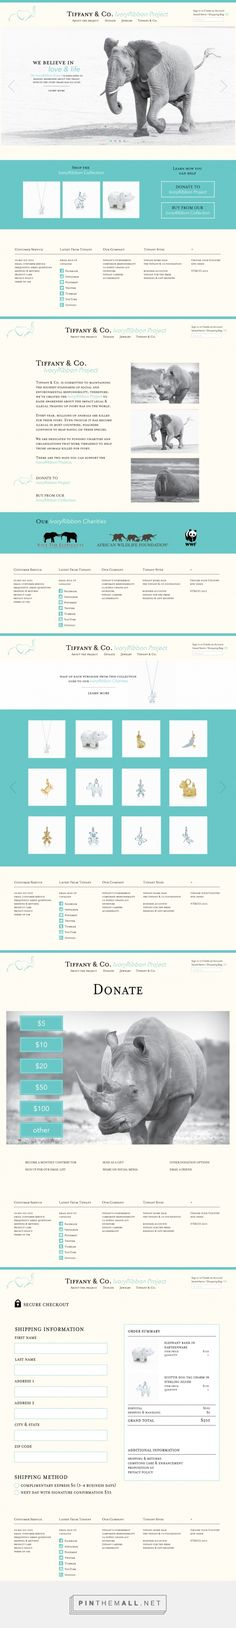 Ivory Ribbon Project Web Design by Shannon Mckenna | Fivestar Branding Agency – Design and Branding Agency & Inspiration Gallery